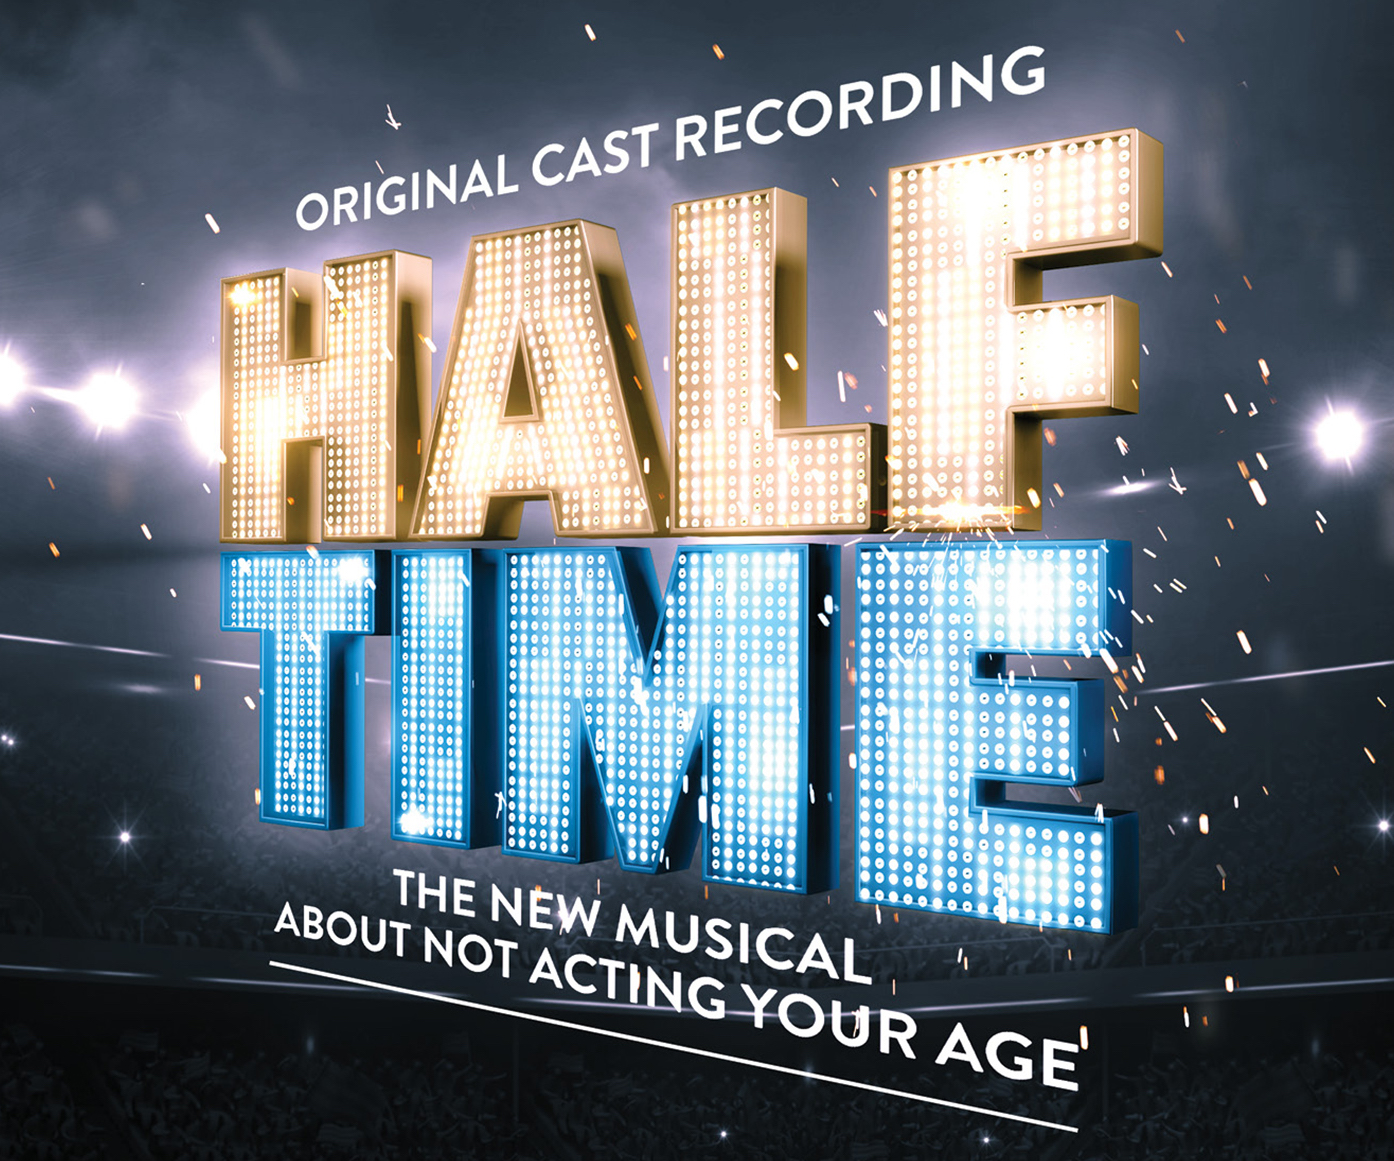 Half Time (Original Cast Recording)